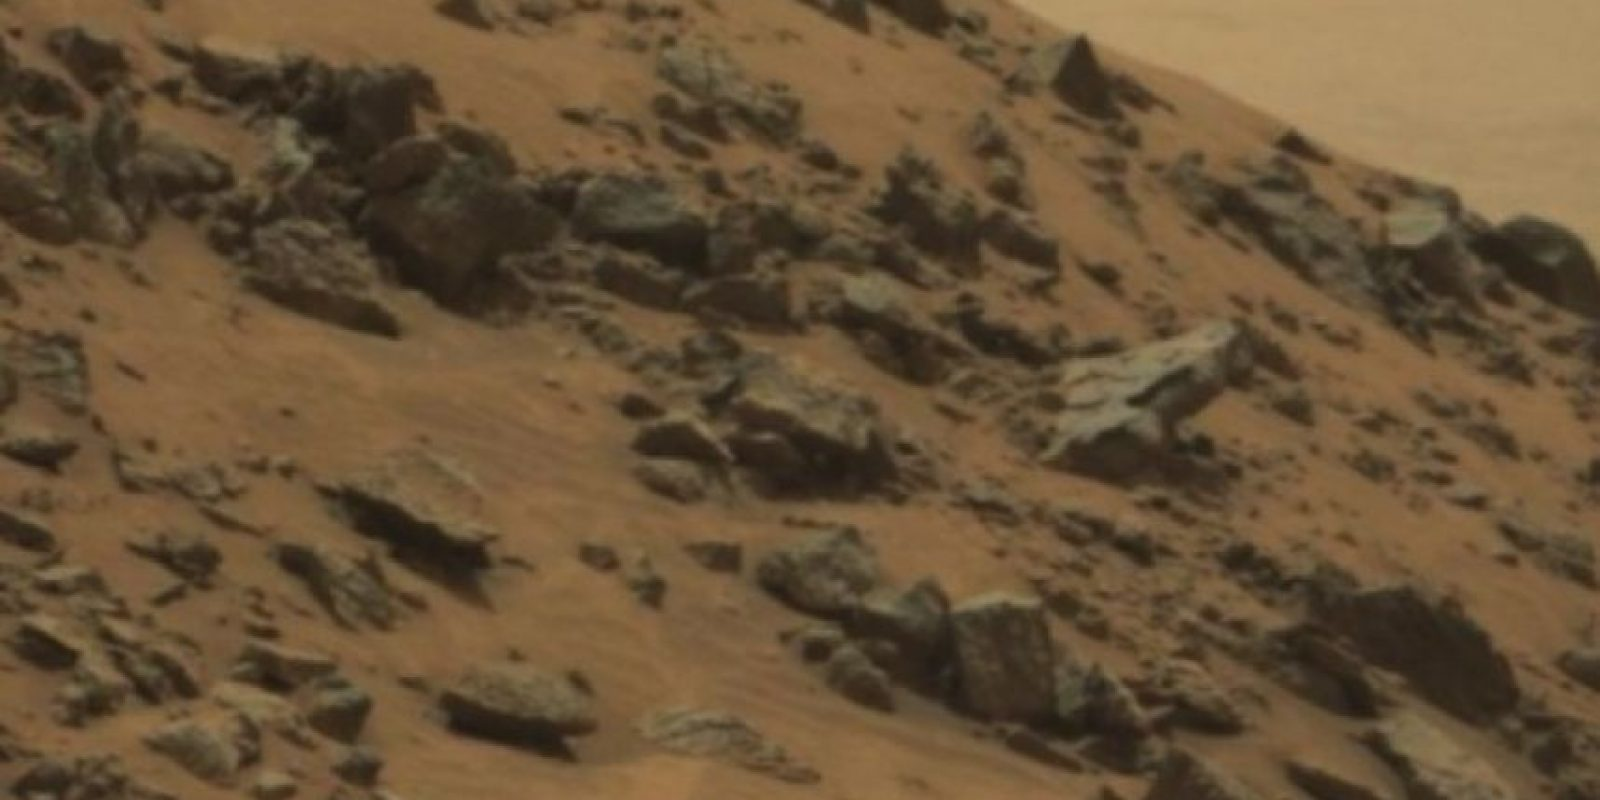 Foto: Foto original en http://mars.nasa.gov/msl/multimedia/raw/?rawid=0978MR0043250040502821E01_DXXX&s=978